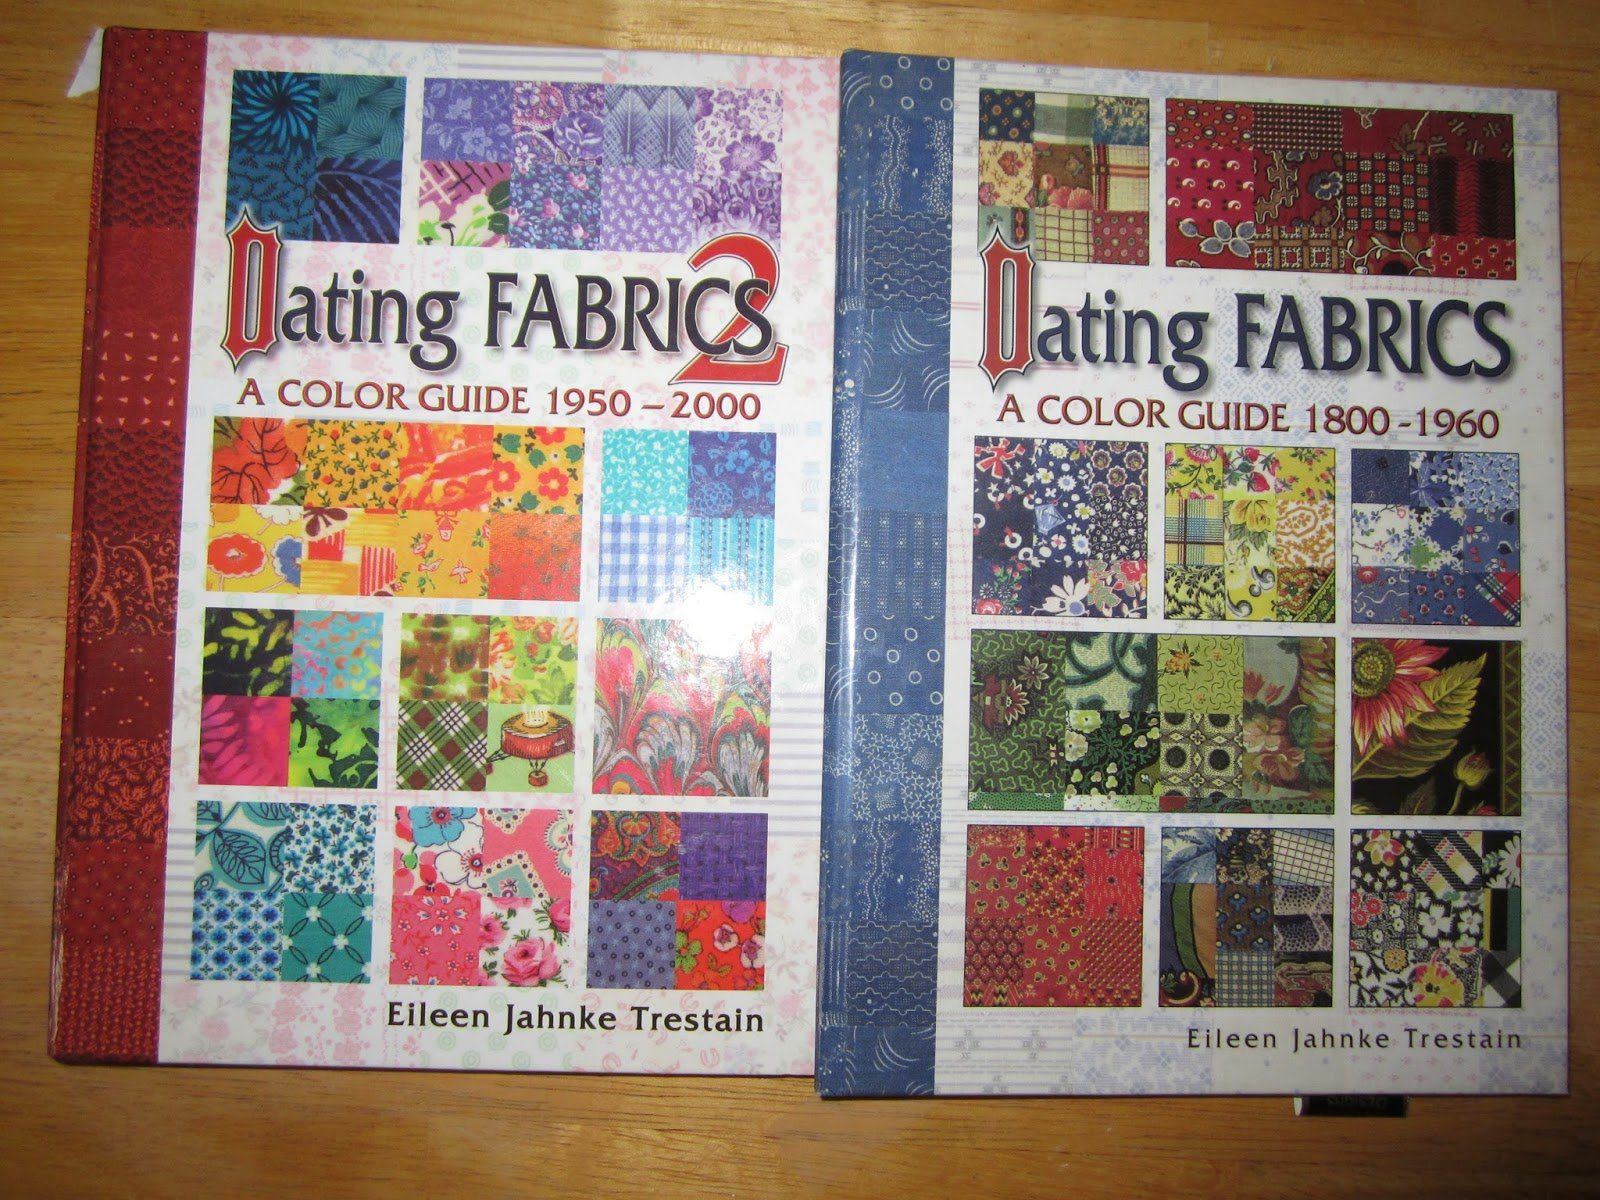 Dating Fabrics book review